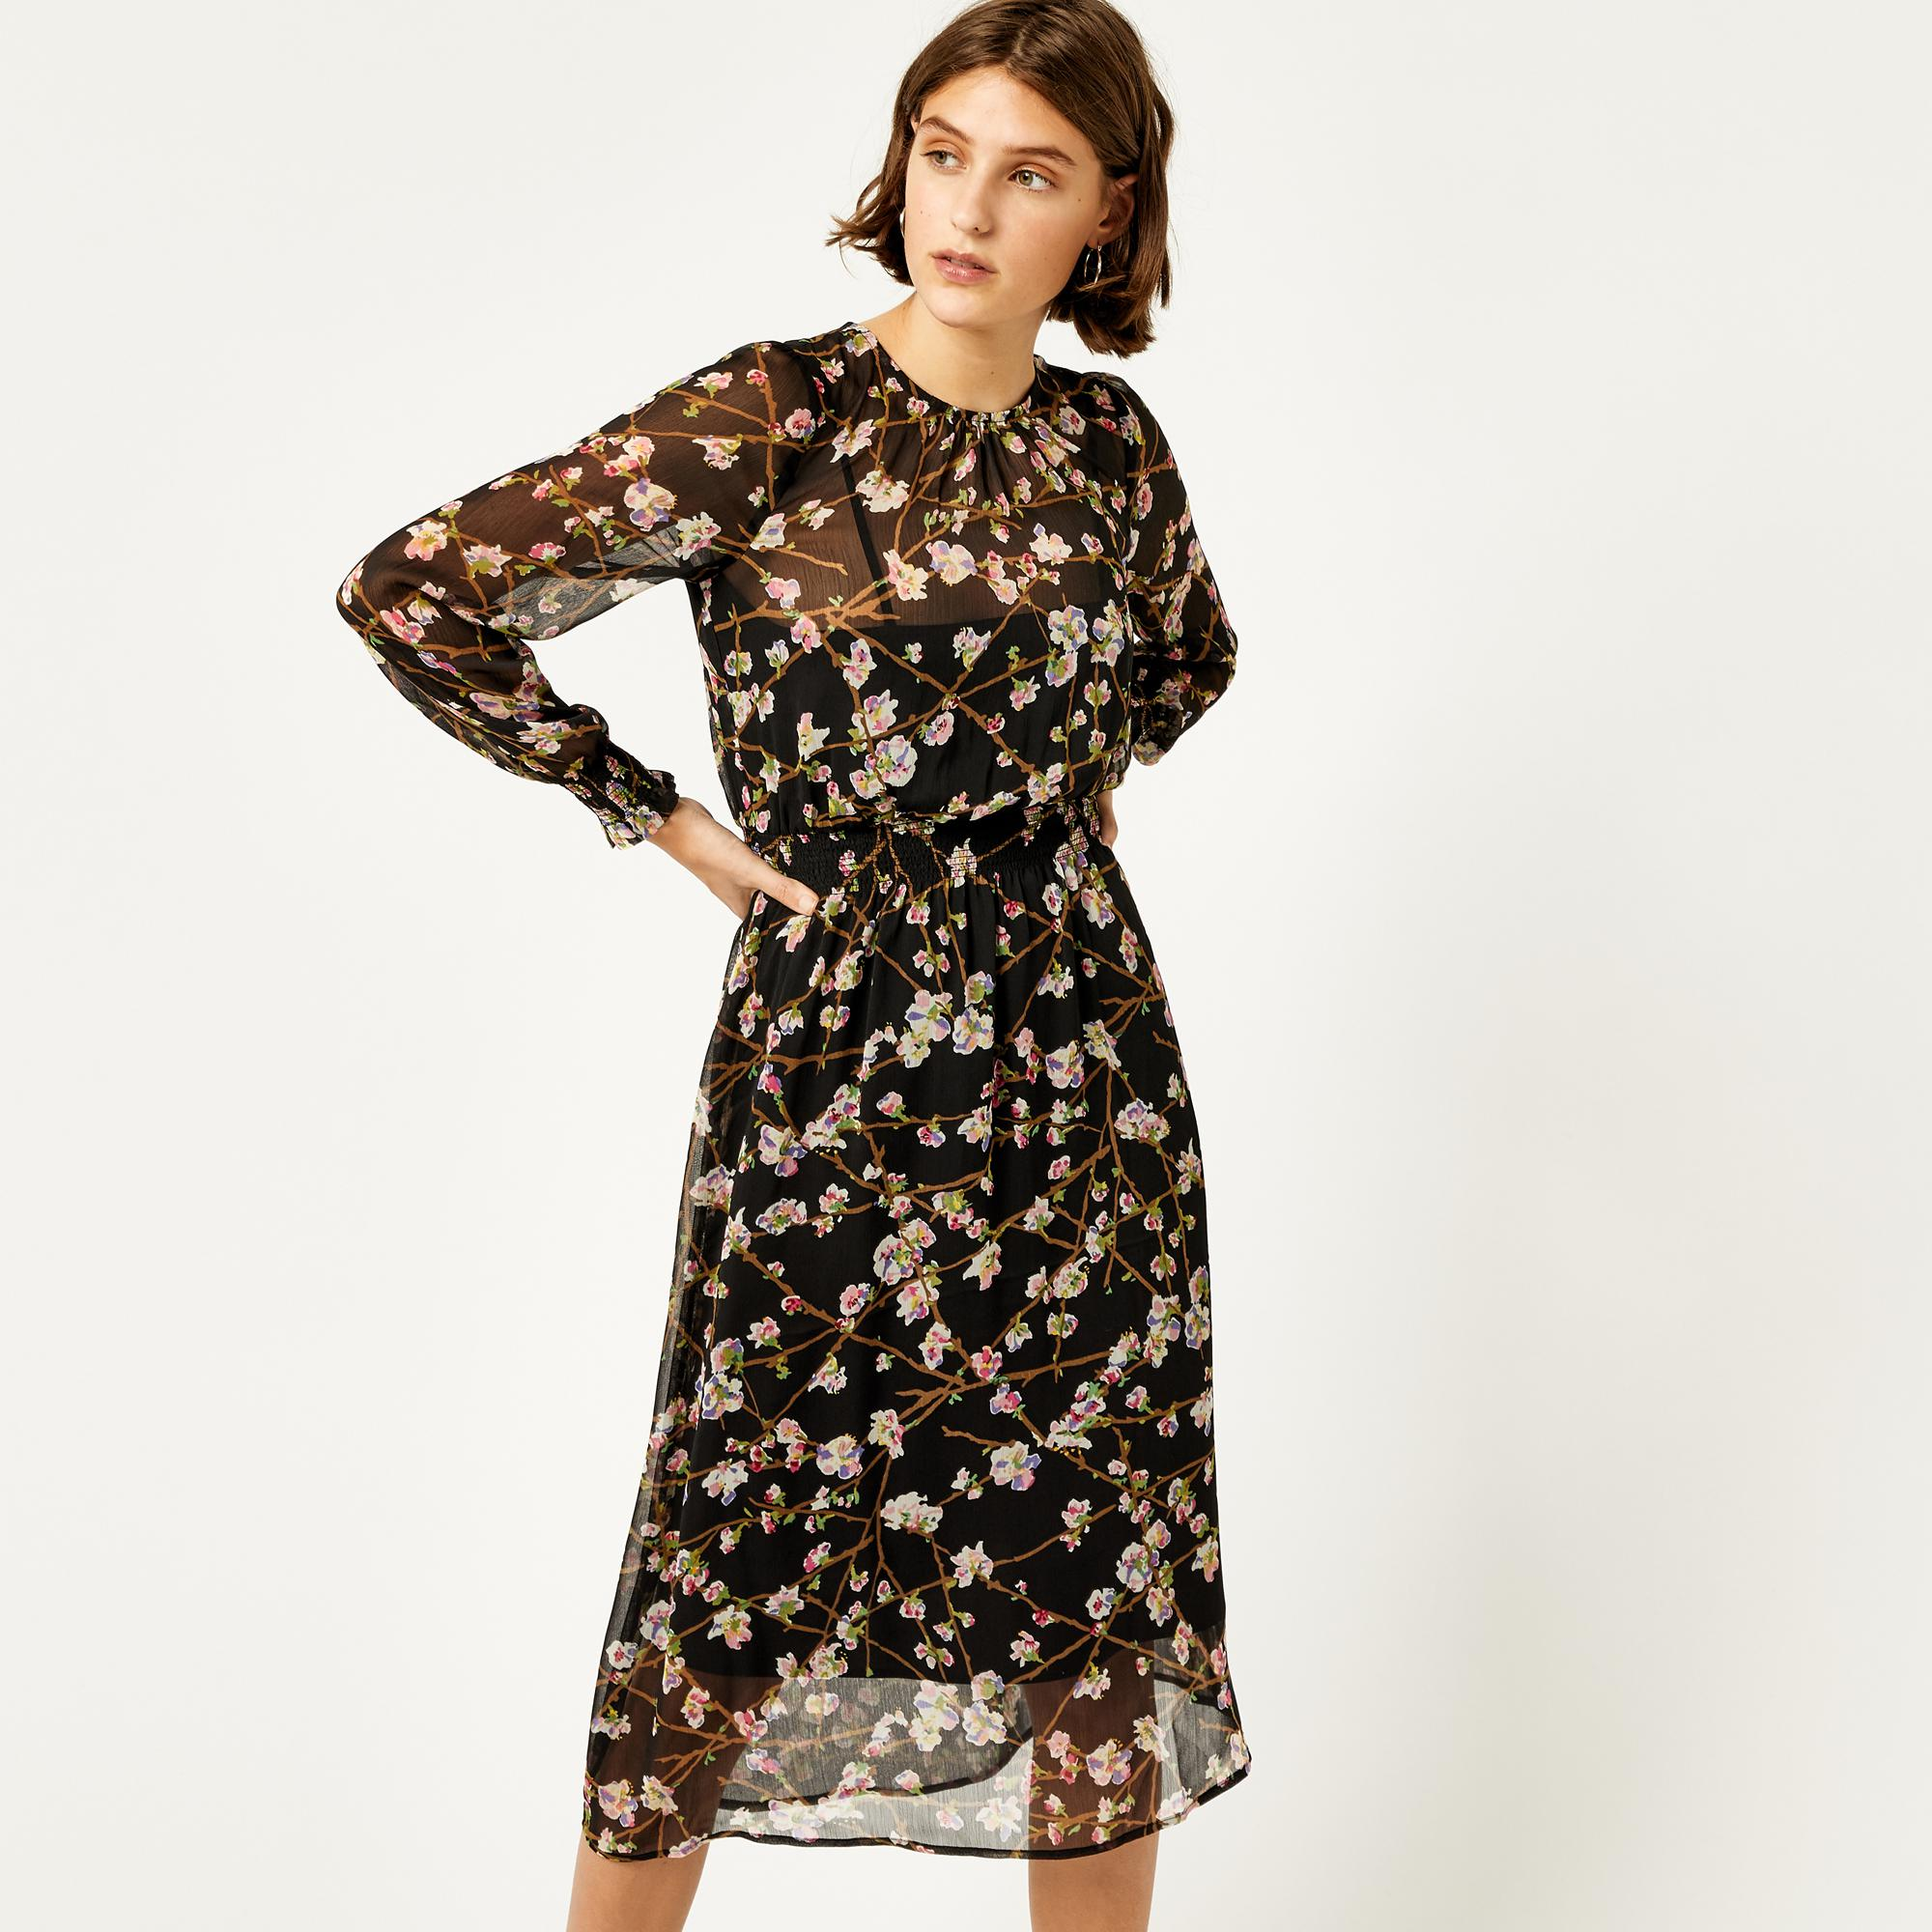 a586188a7ca Warehouse Sweet Cherry Midi Dress in Black - Lyst